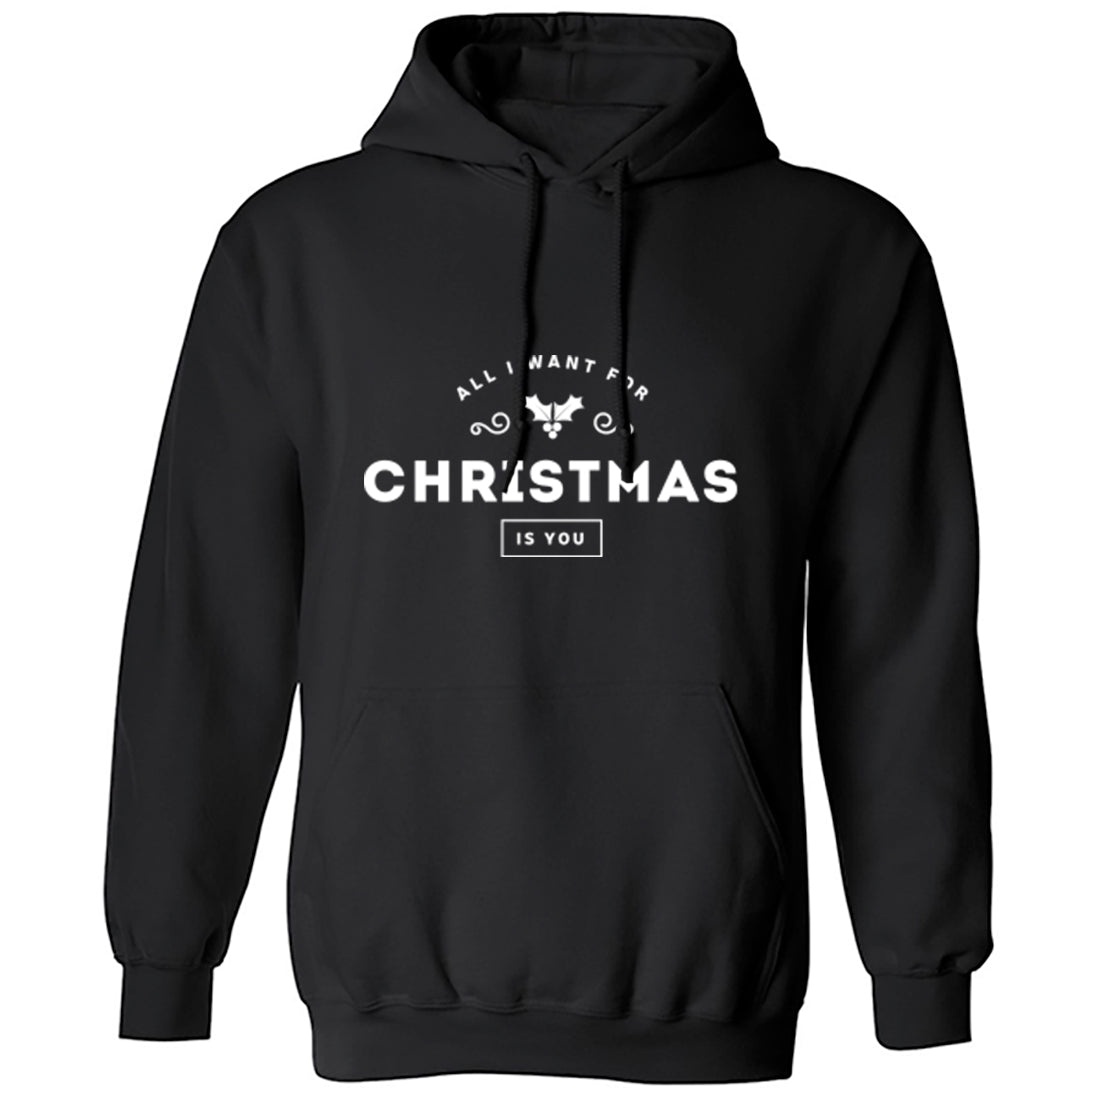 All I Want For Christmas Is You Unisex Hoodie K1251 - Illustrated Identity Ltd.